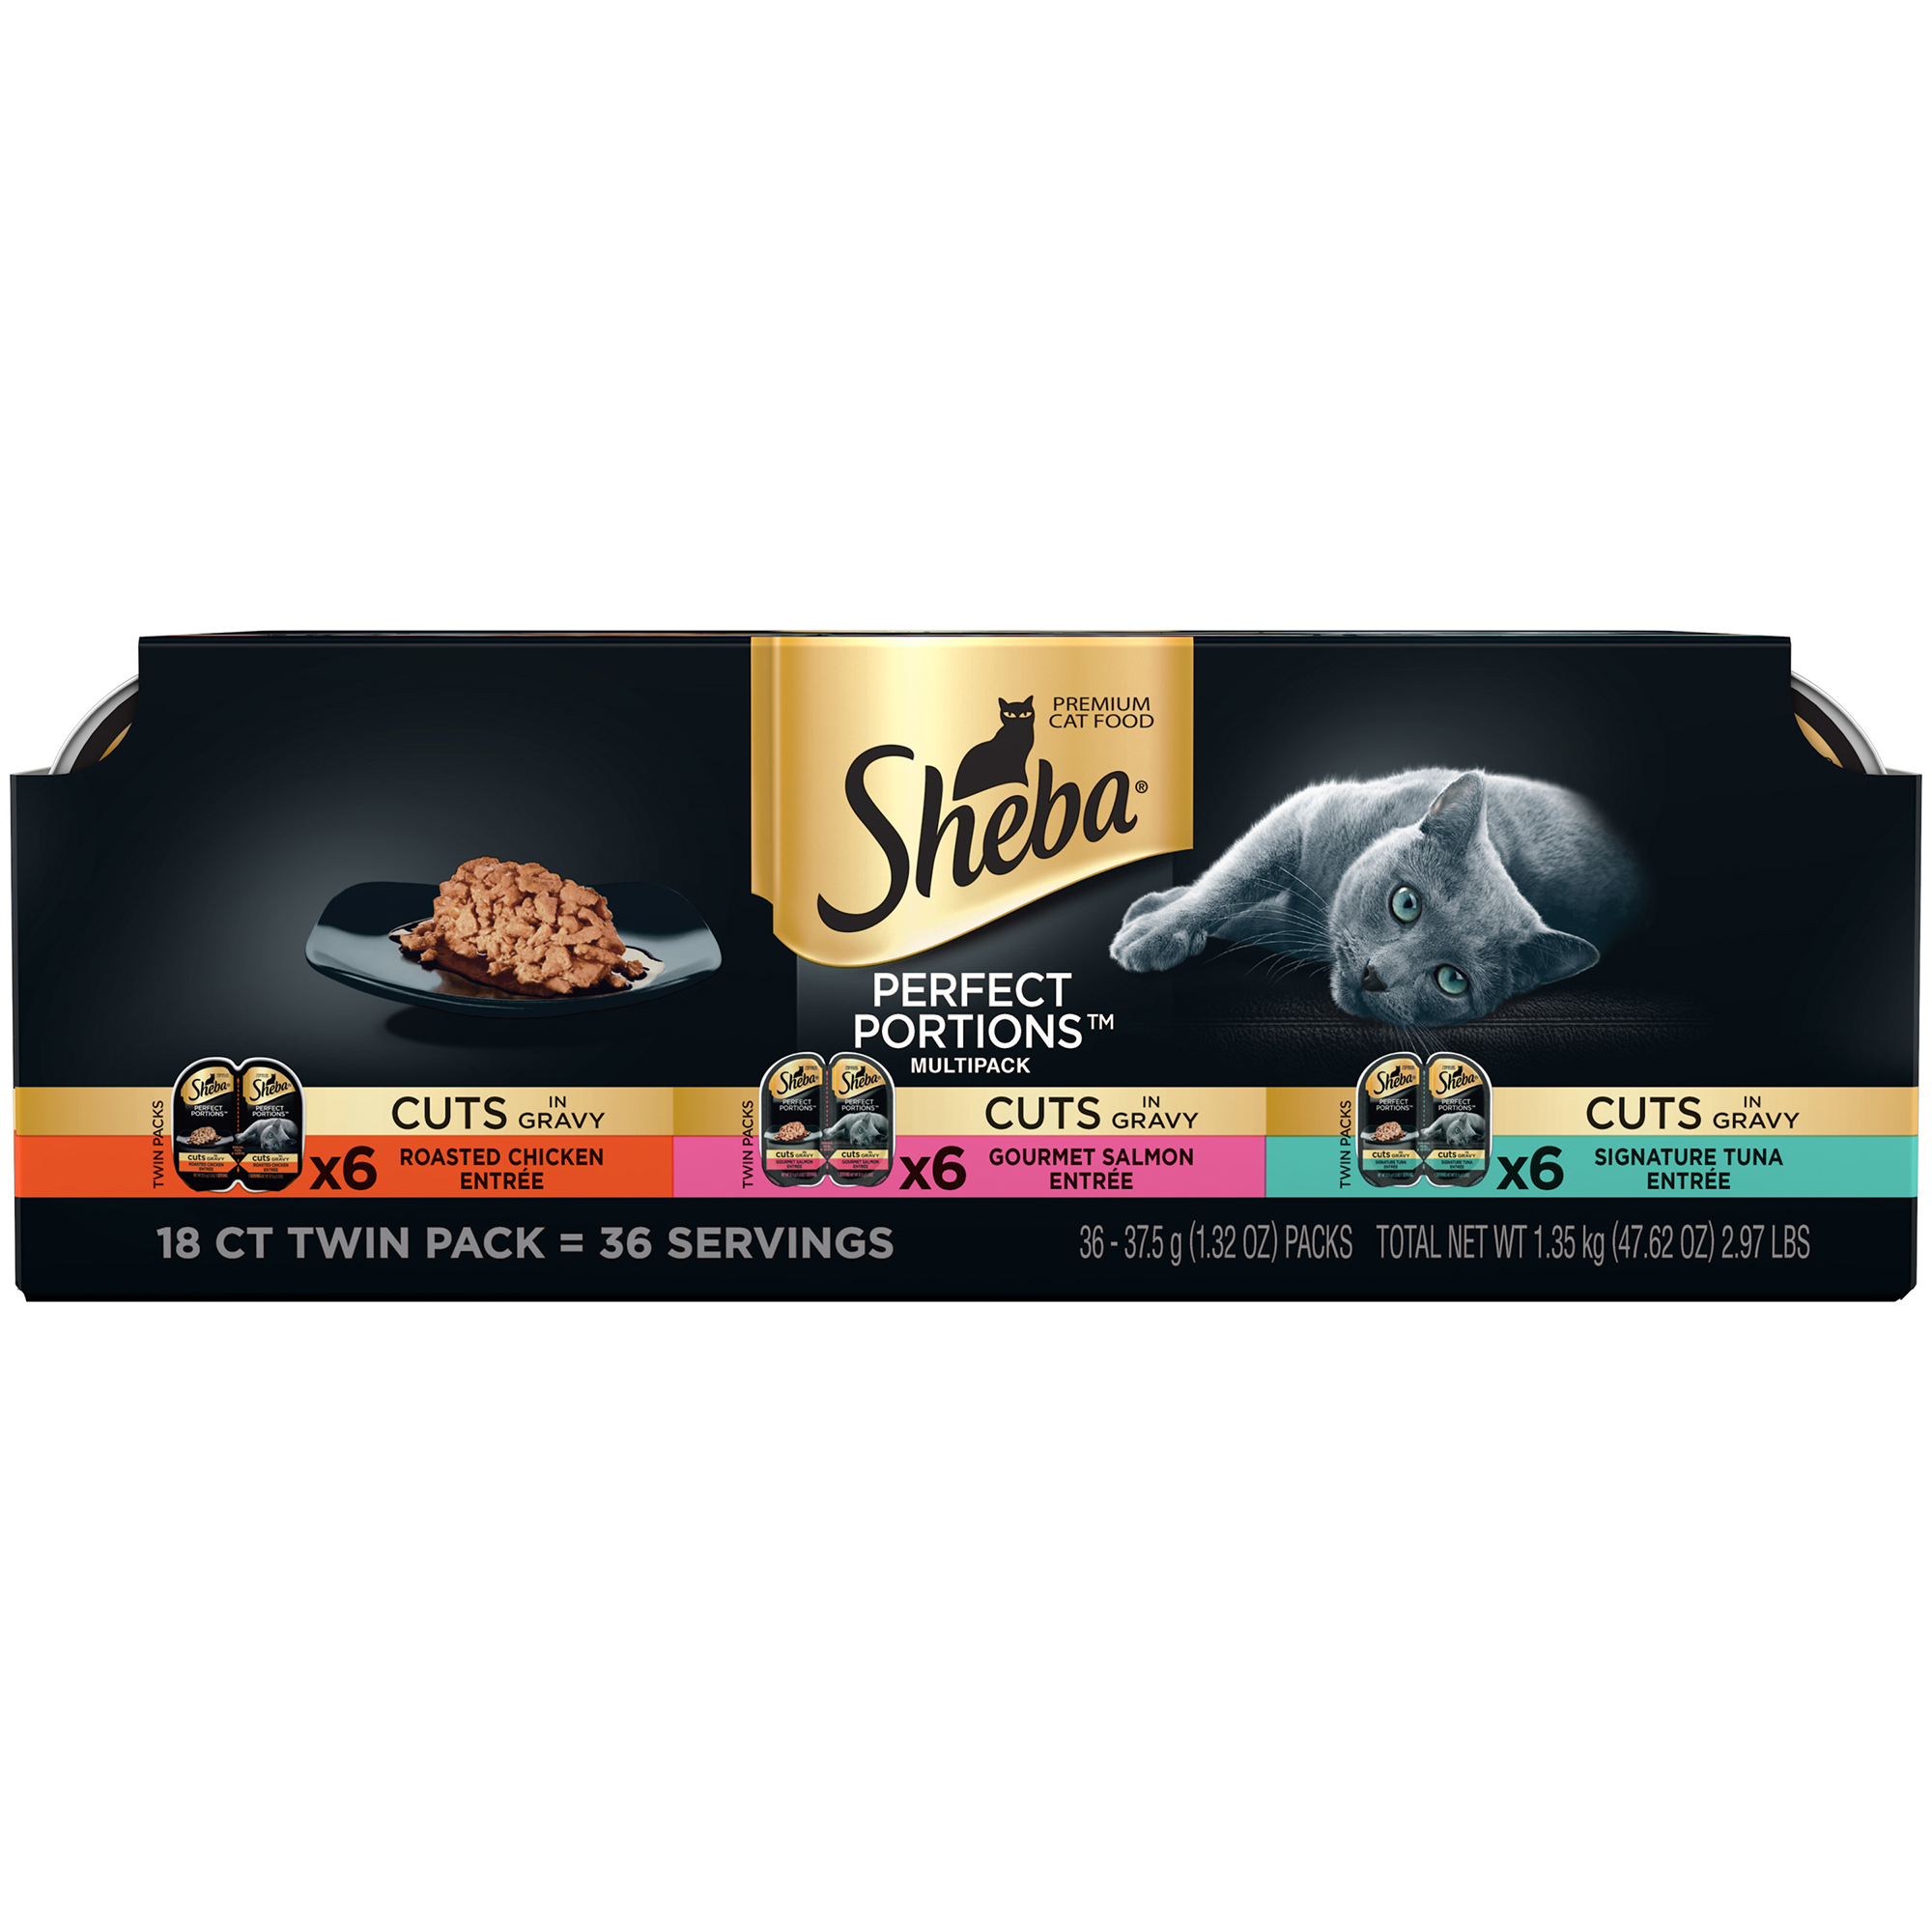 Sheba Perfect Portions Cuts In Gravy Wet Cat Food, Grain Free Chicken, Salmon, Tuna Multipack, 2.6 Oz (18 Twin Packs)